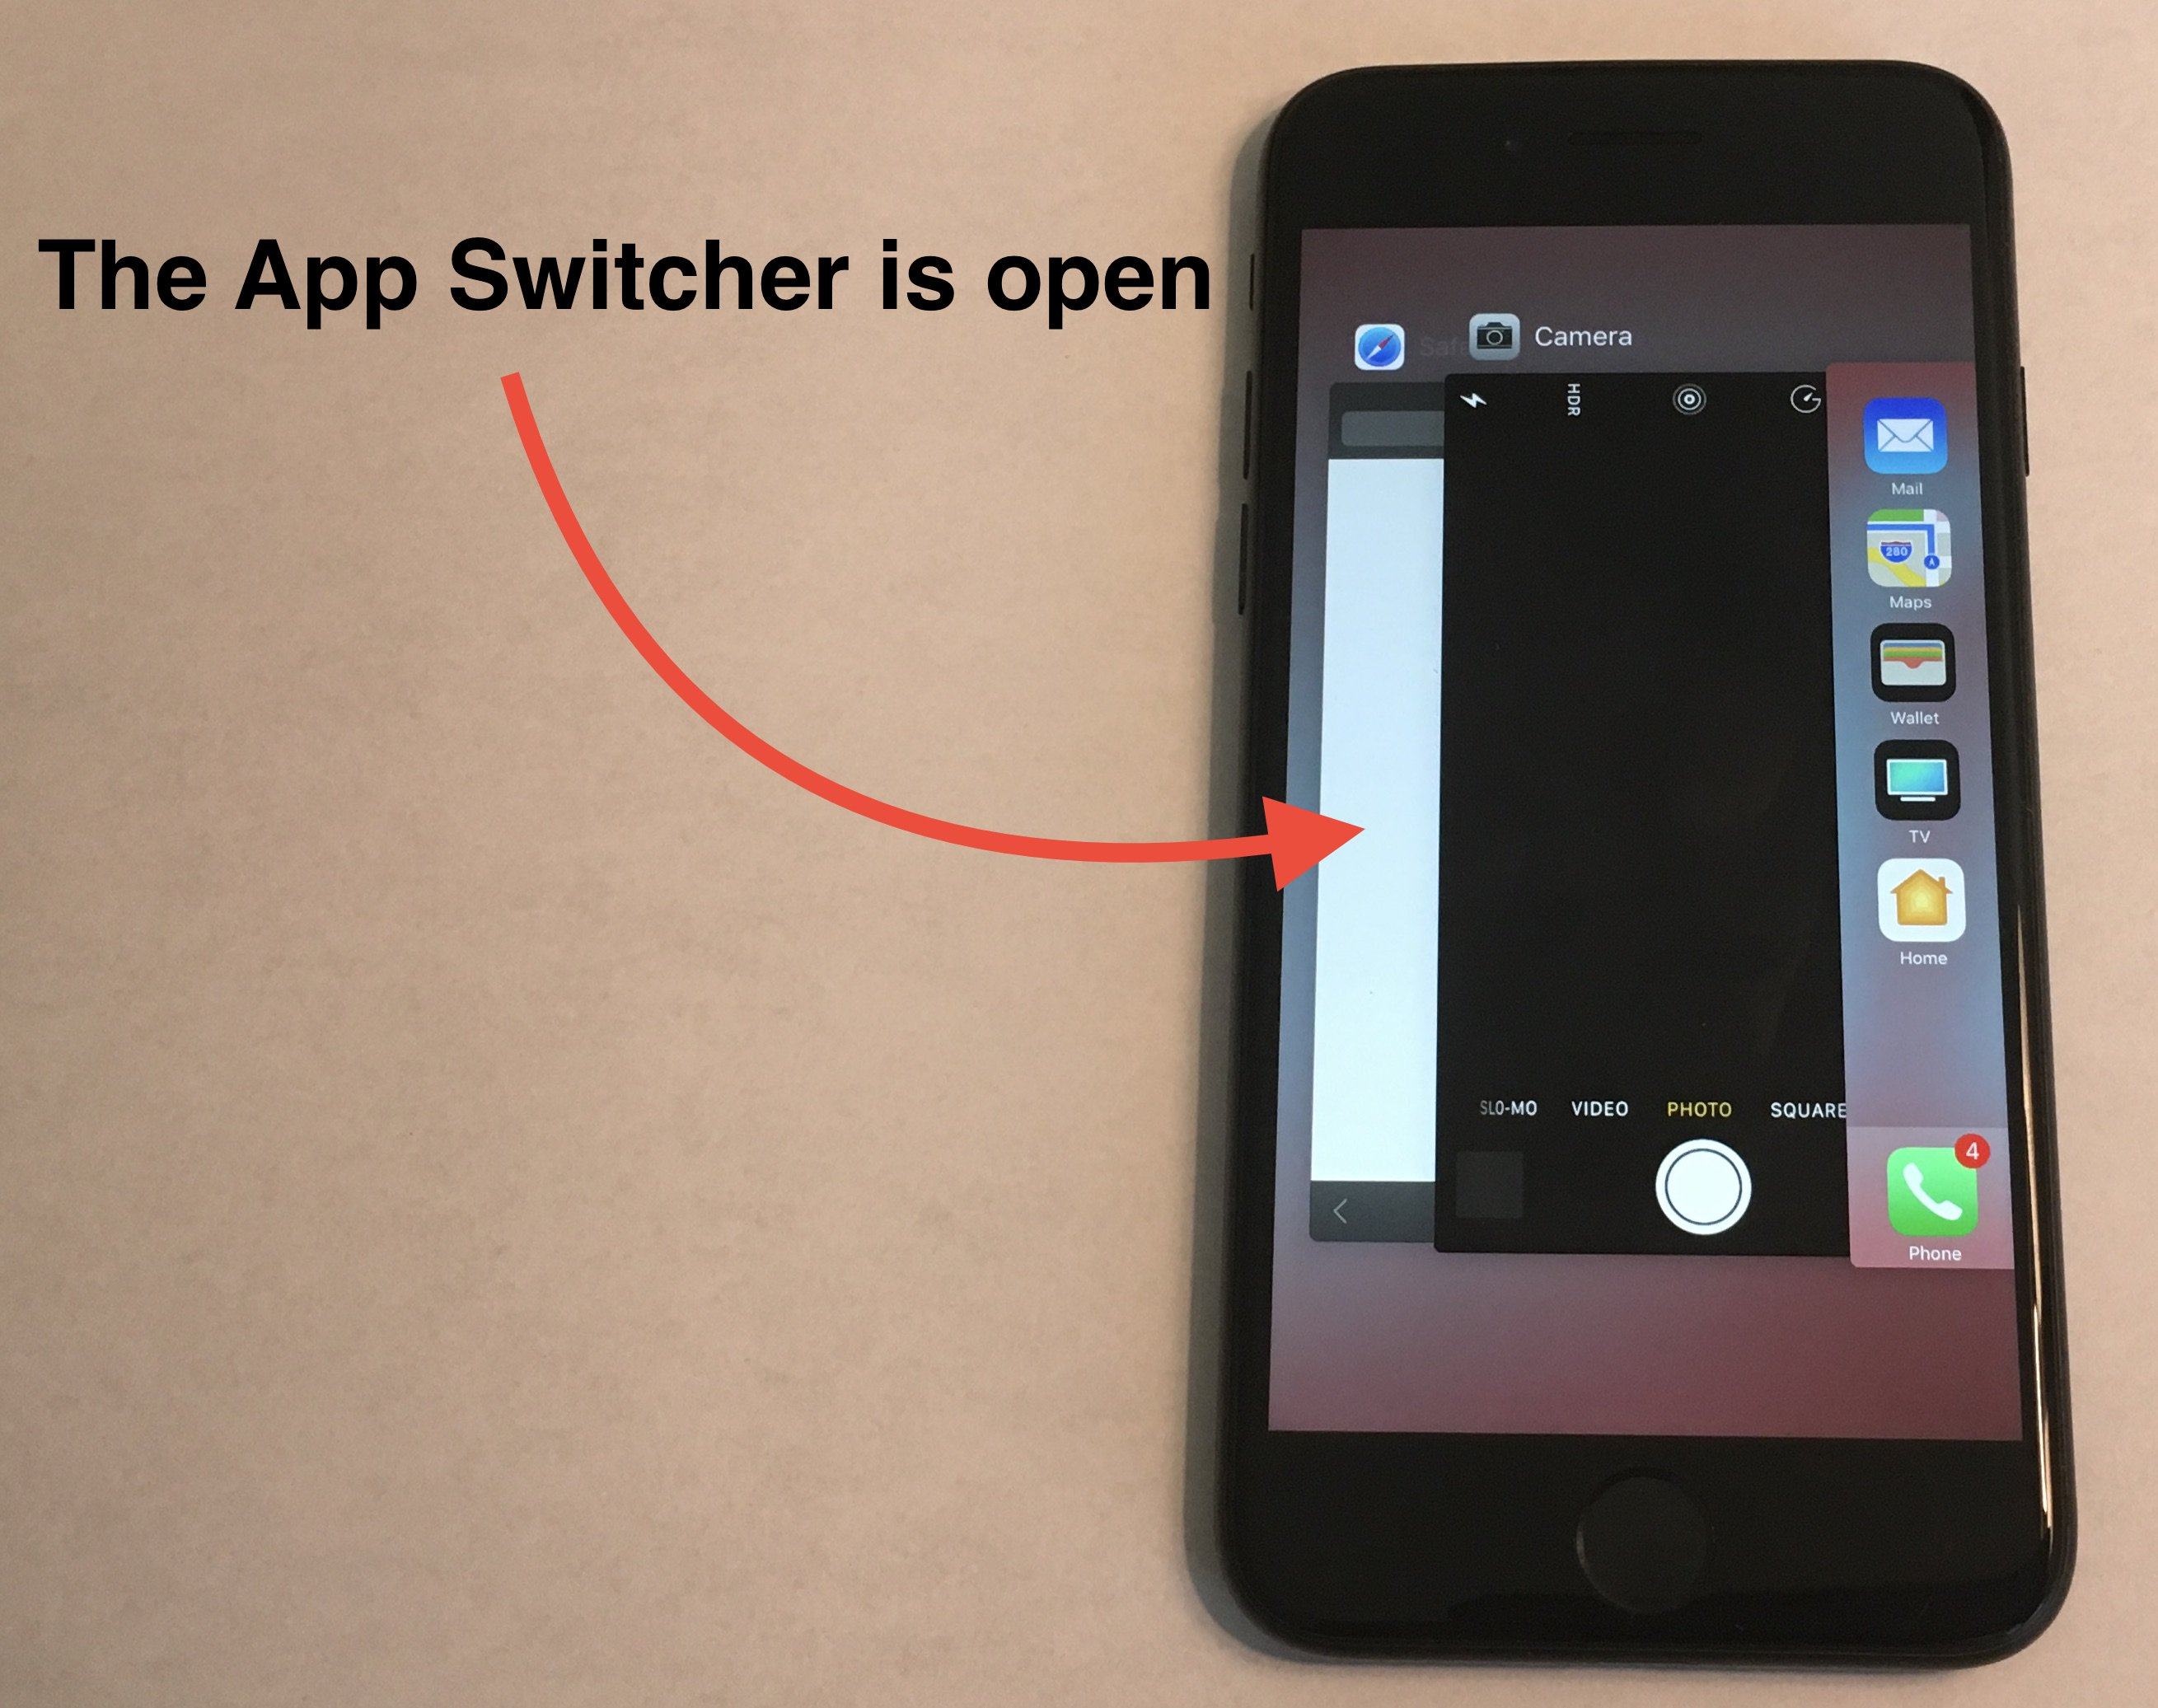 app switcher is open